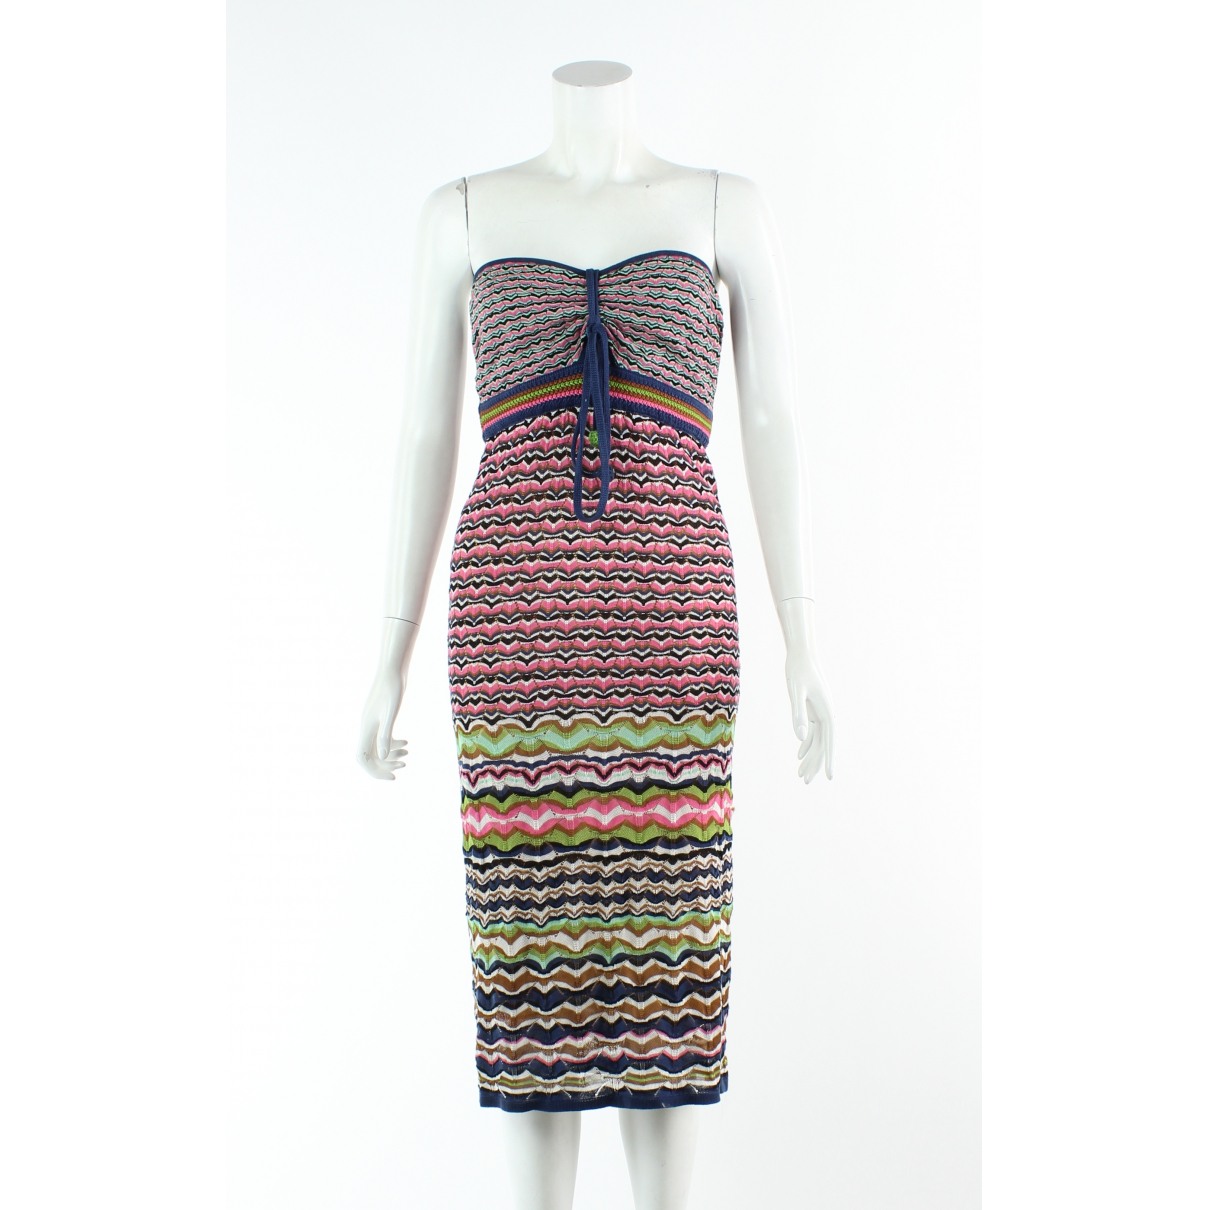 M Missoni \N Multicolour Cotton dress for Women 48 FR